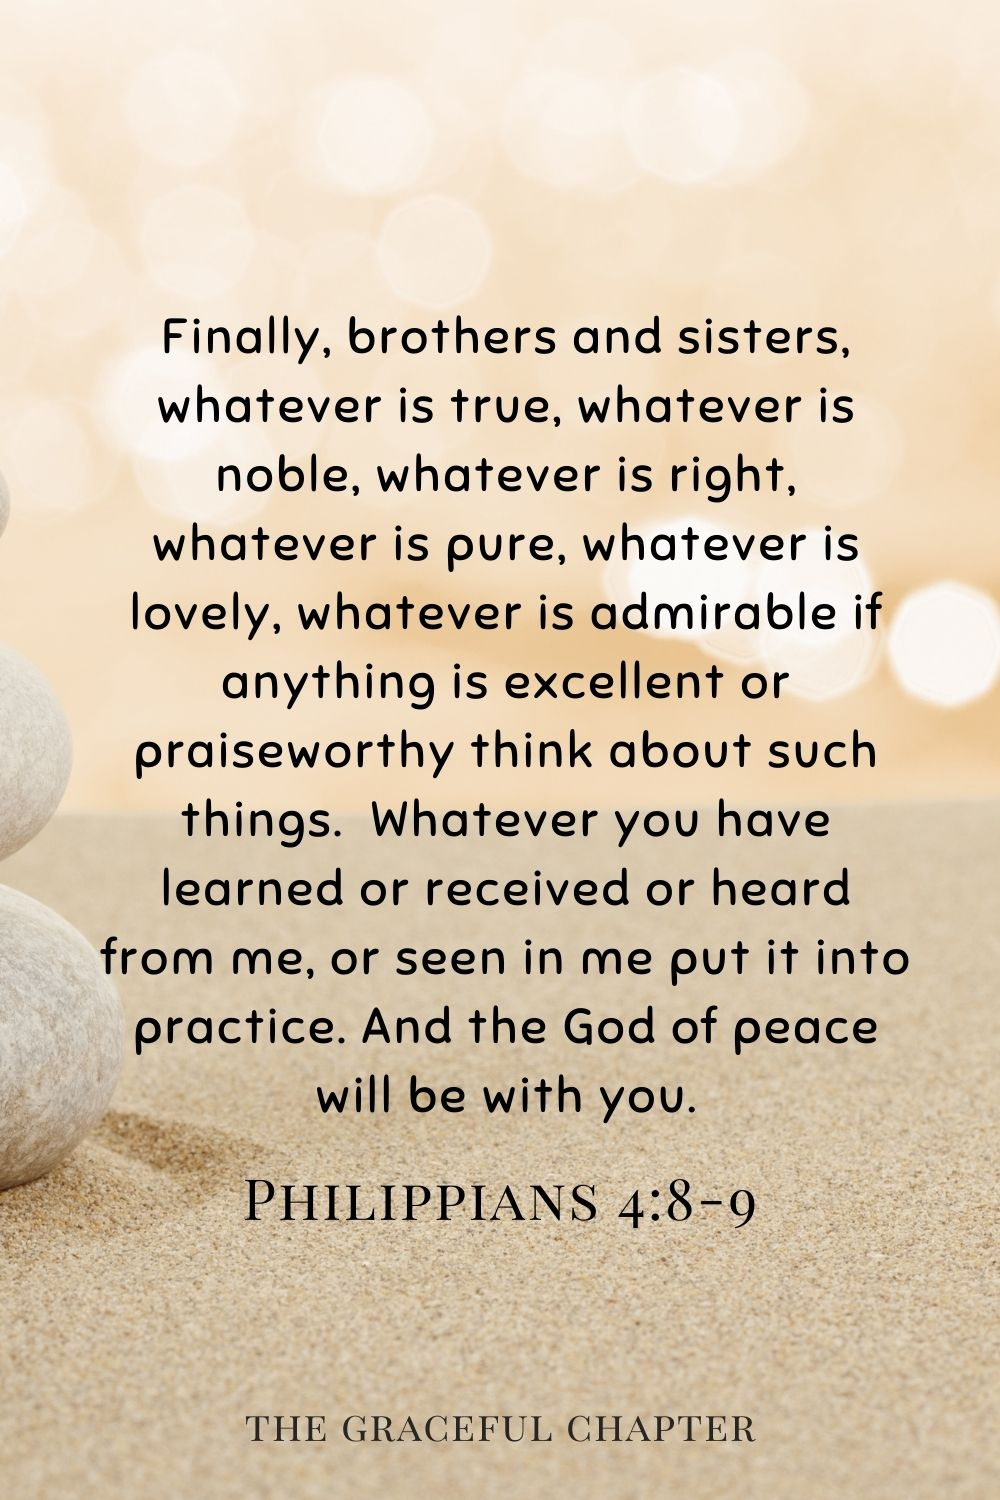 Finally, brothers and sisters, whatever is true, whatever is noble, whatever is right, whatever is pure, whatever is lovely, whatever is admirable if anything is excellent or praiseworthy think about such things. Whatever you have learned or received or heard from me, or seen in me put it into practice. And the God of peace will be with you. Philippians 4:8-9